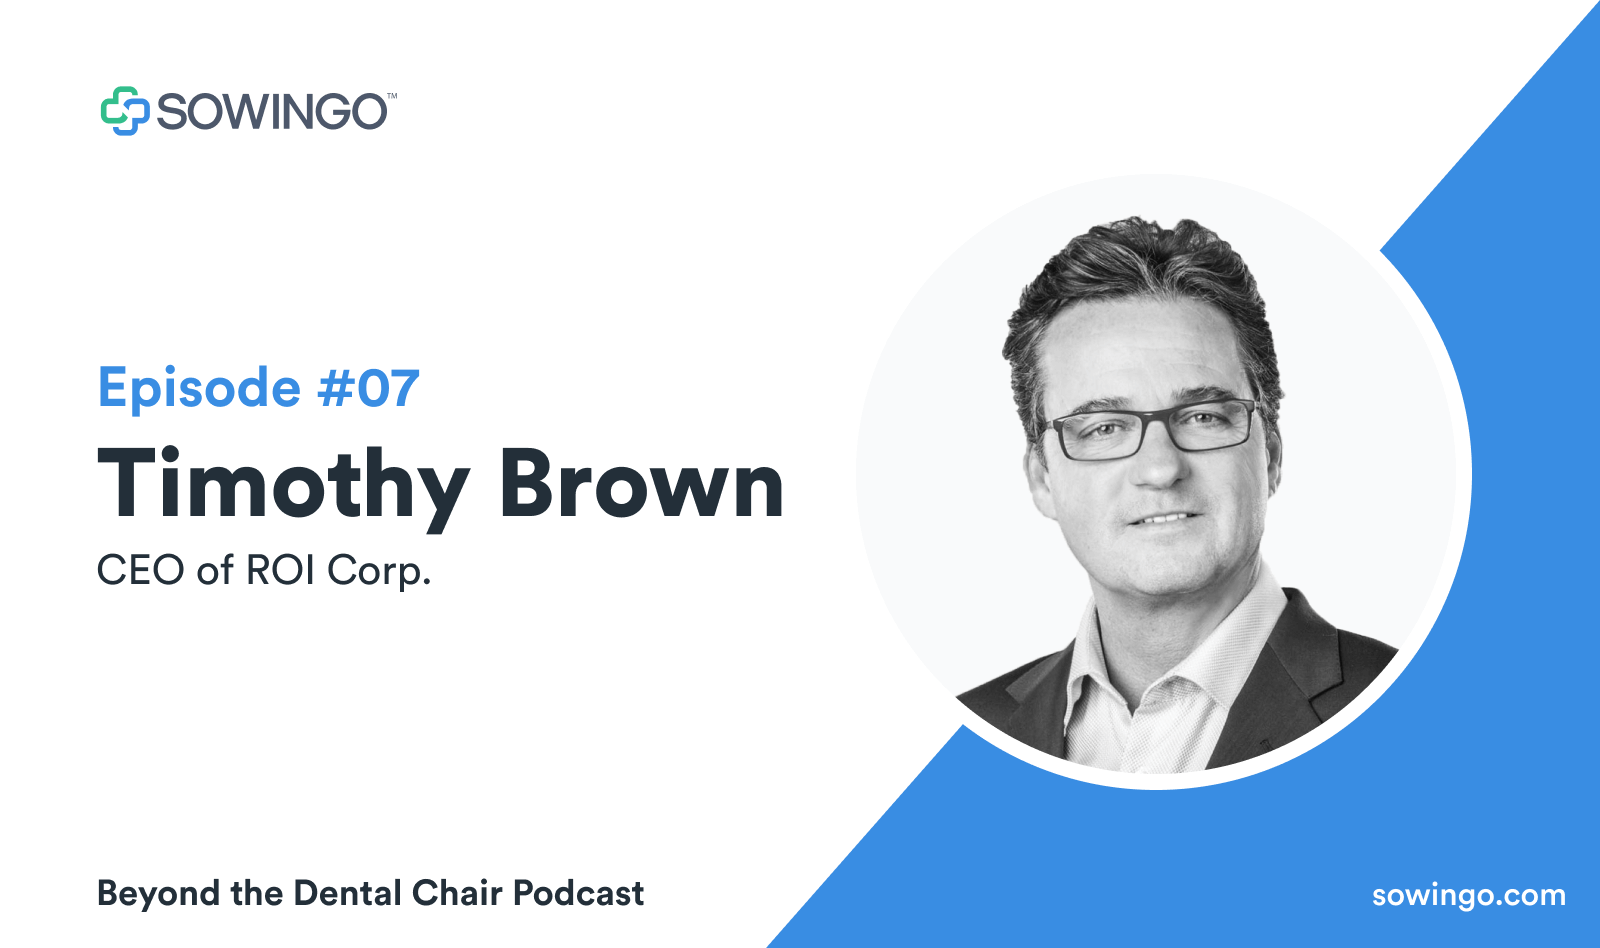 Beyond the dental podcast with Timothy Brown